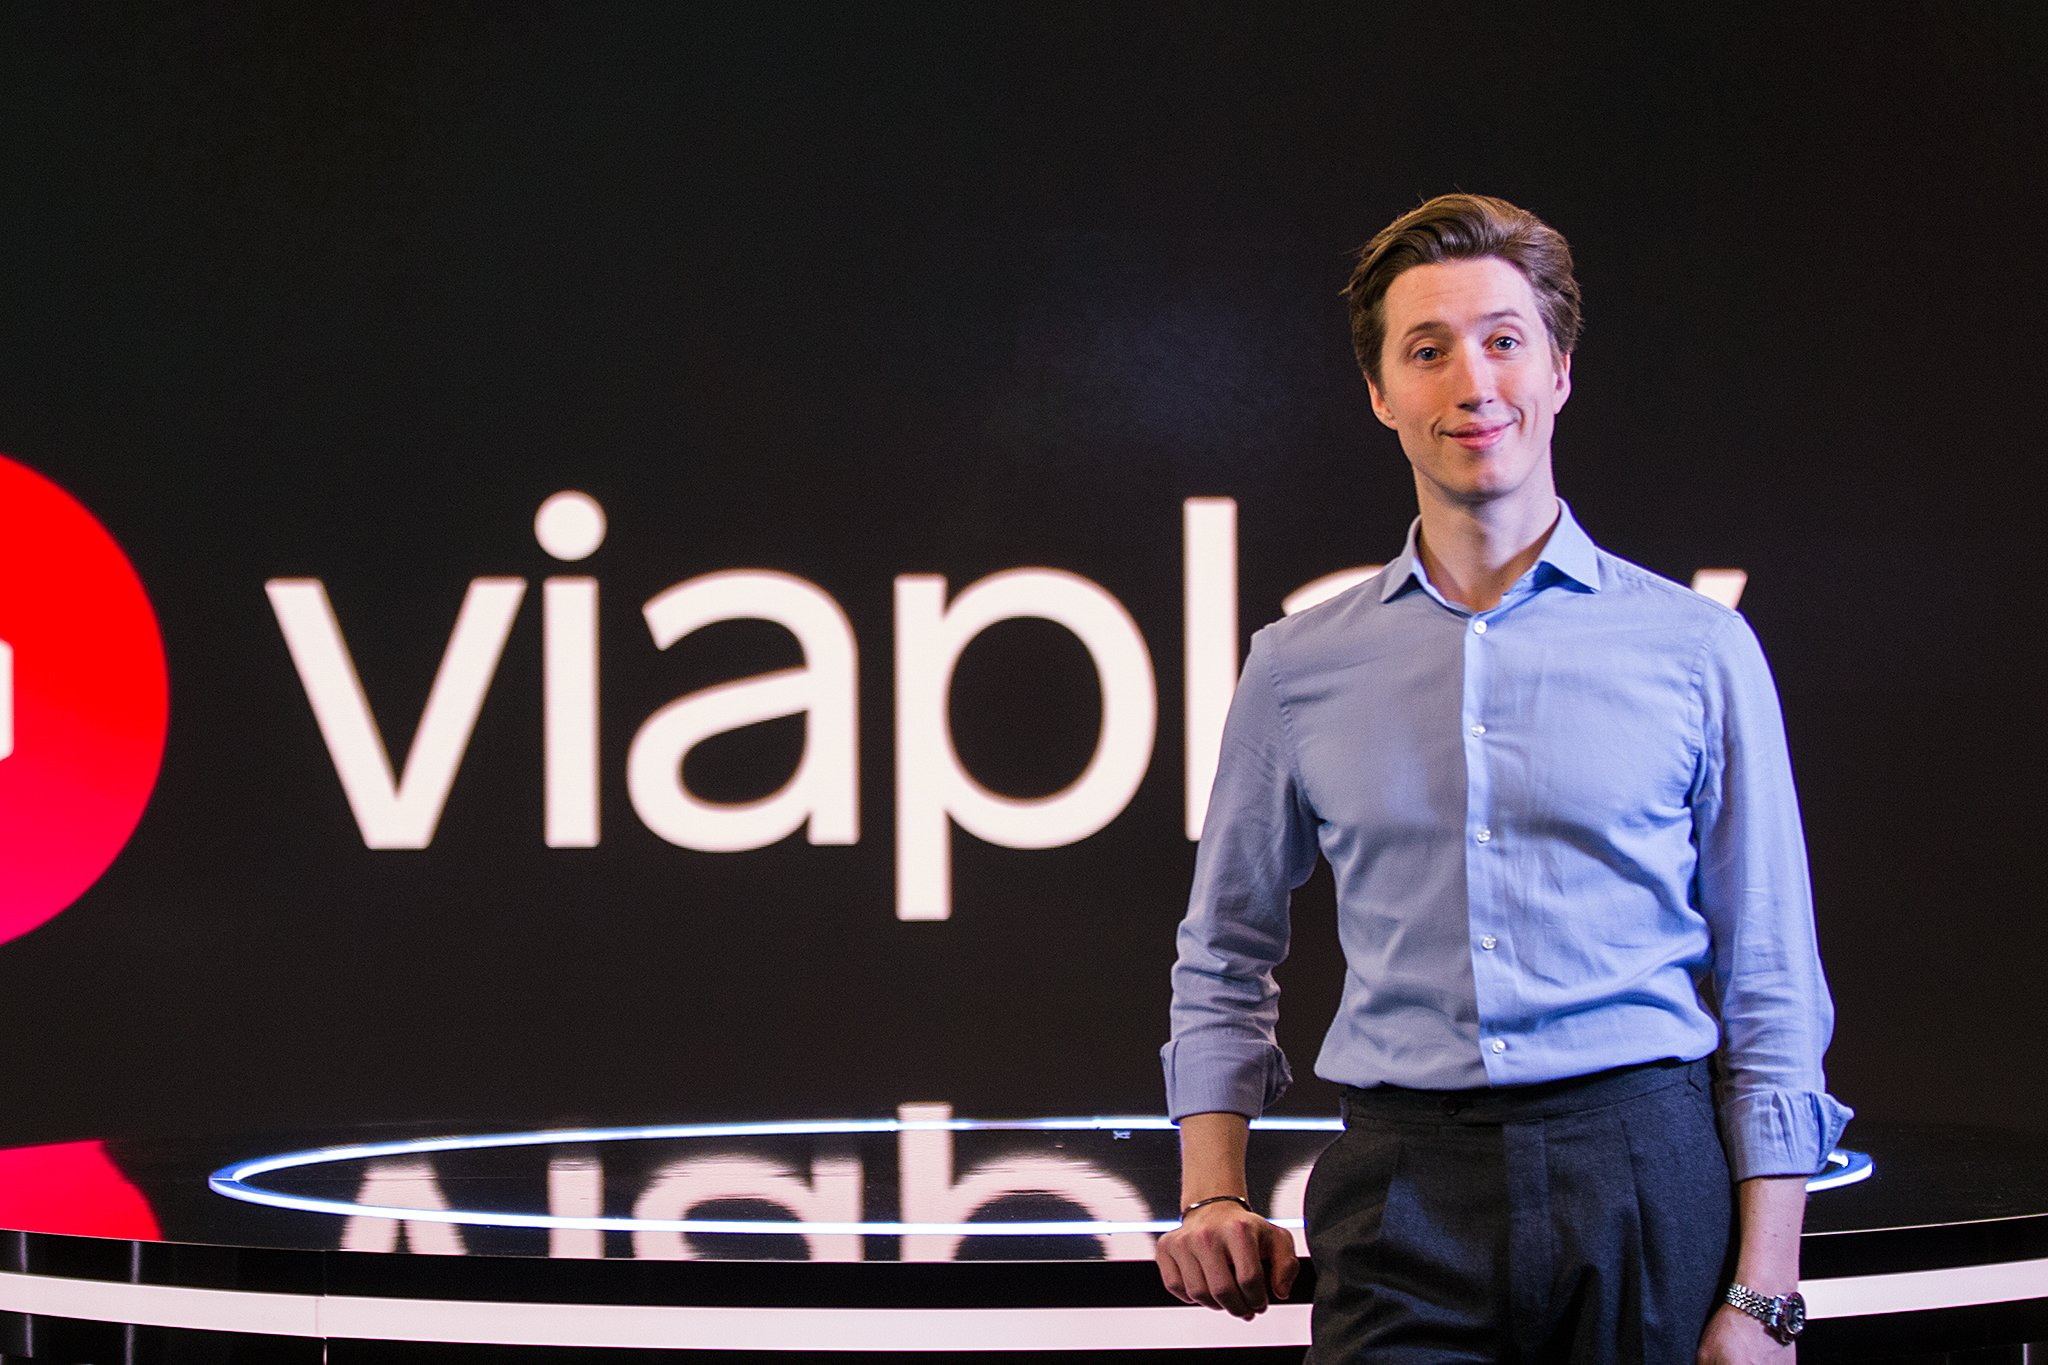 Viaplay Original enlist 1,750 reviewers ahead of series launch